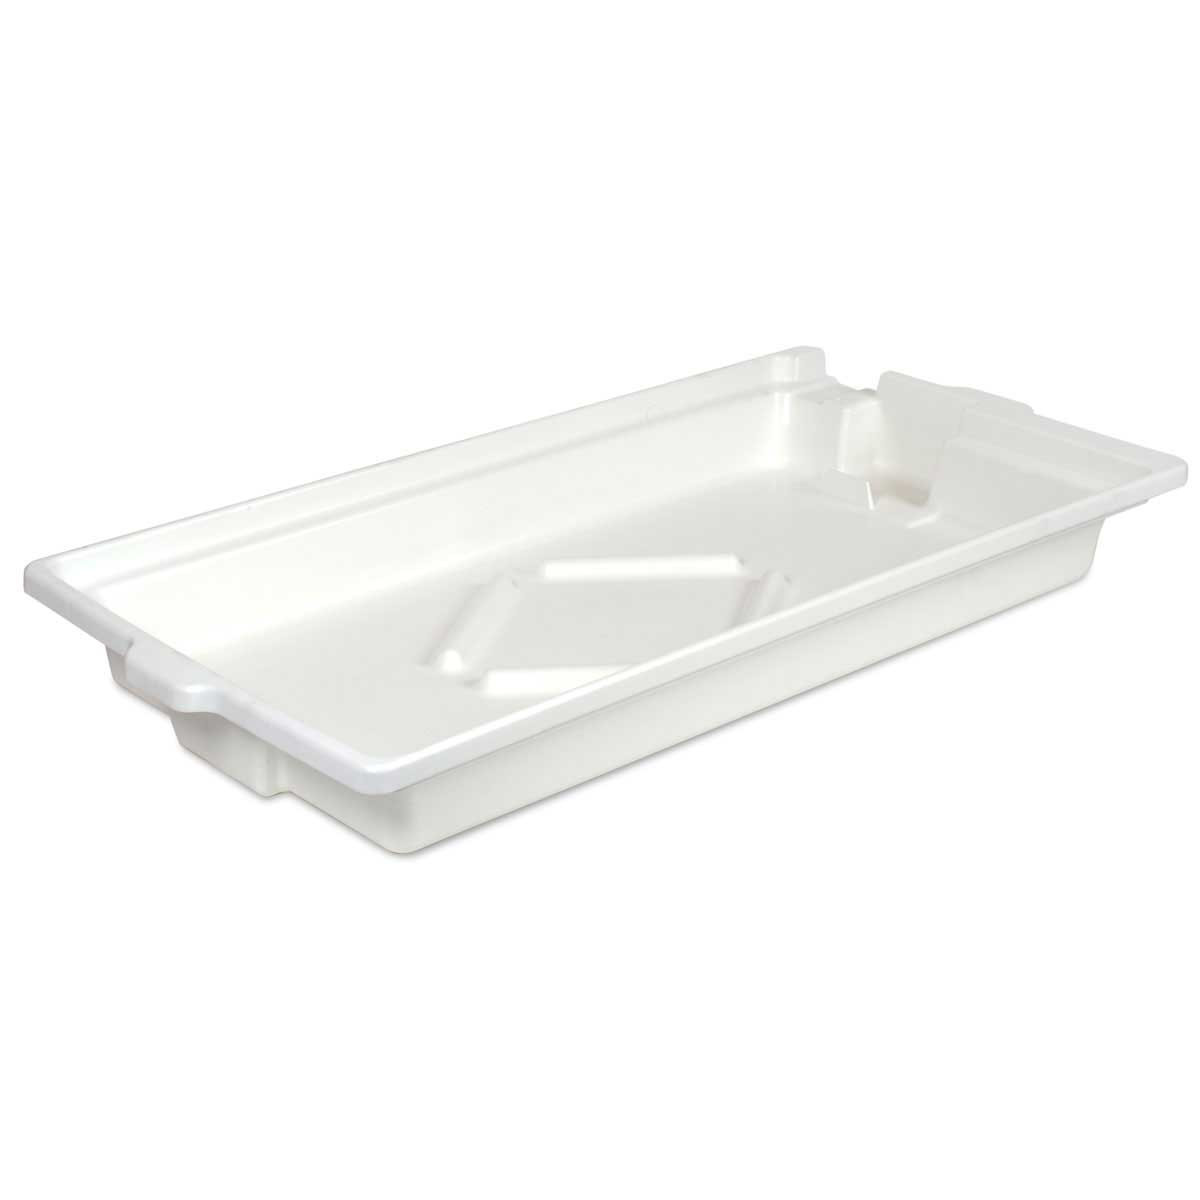 Replacement Water Pan for MK-370EXP